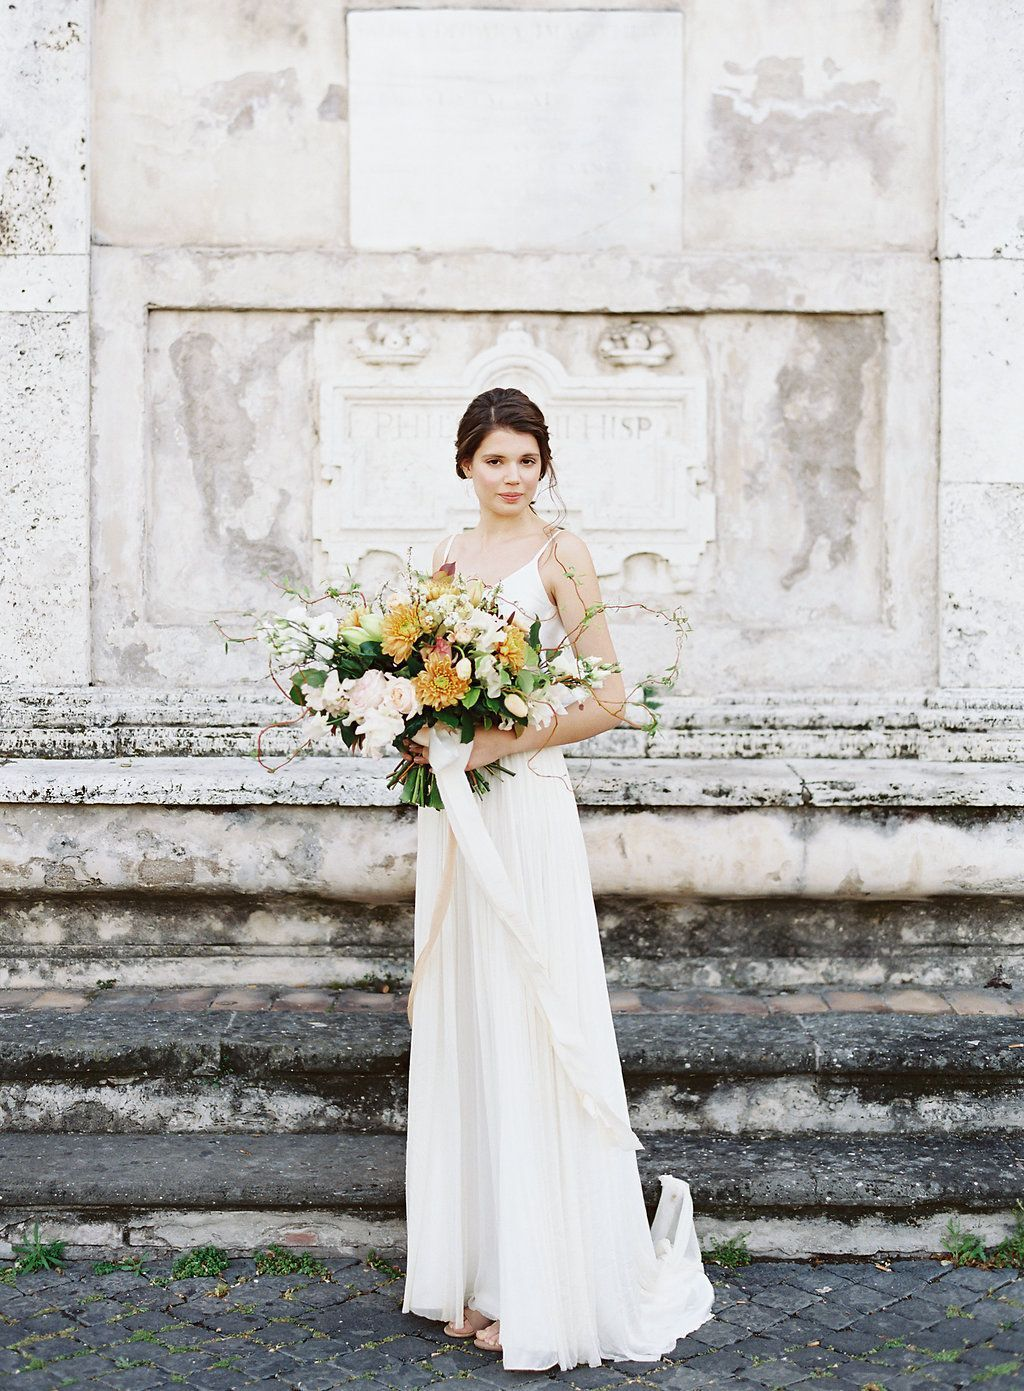 Vicki_Grafton_Photography_Rome_Italy_Wedding_Photographer_2017-19